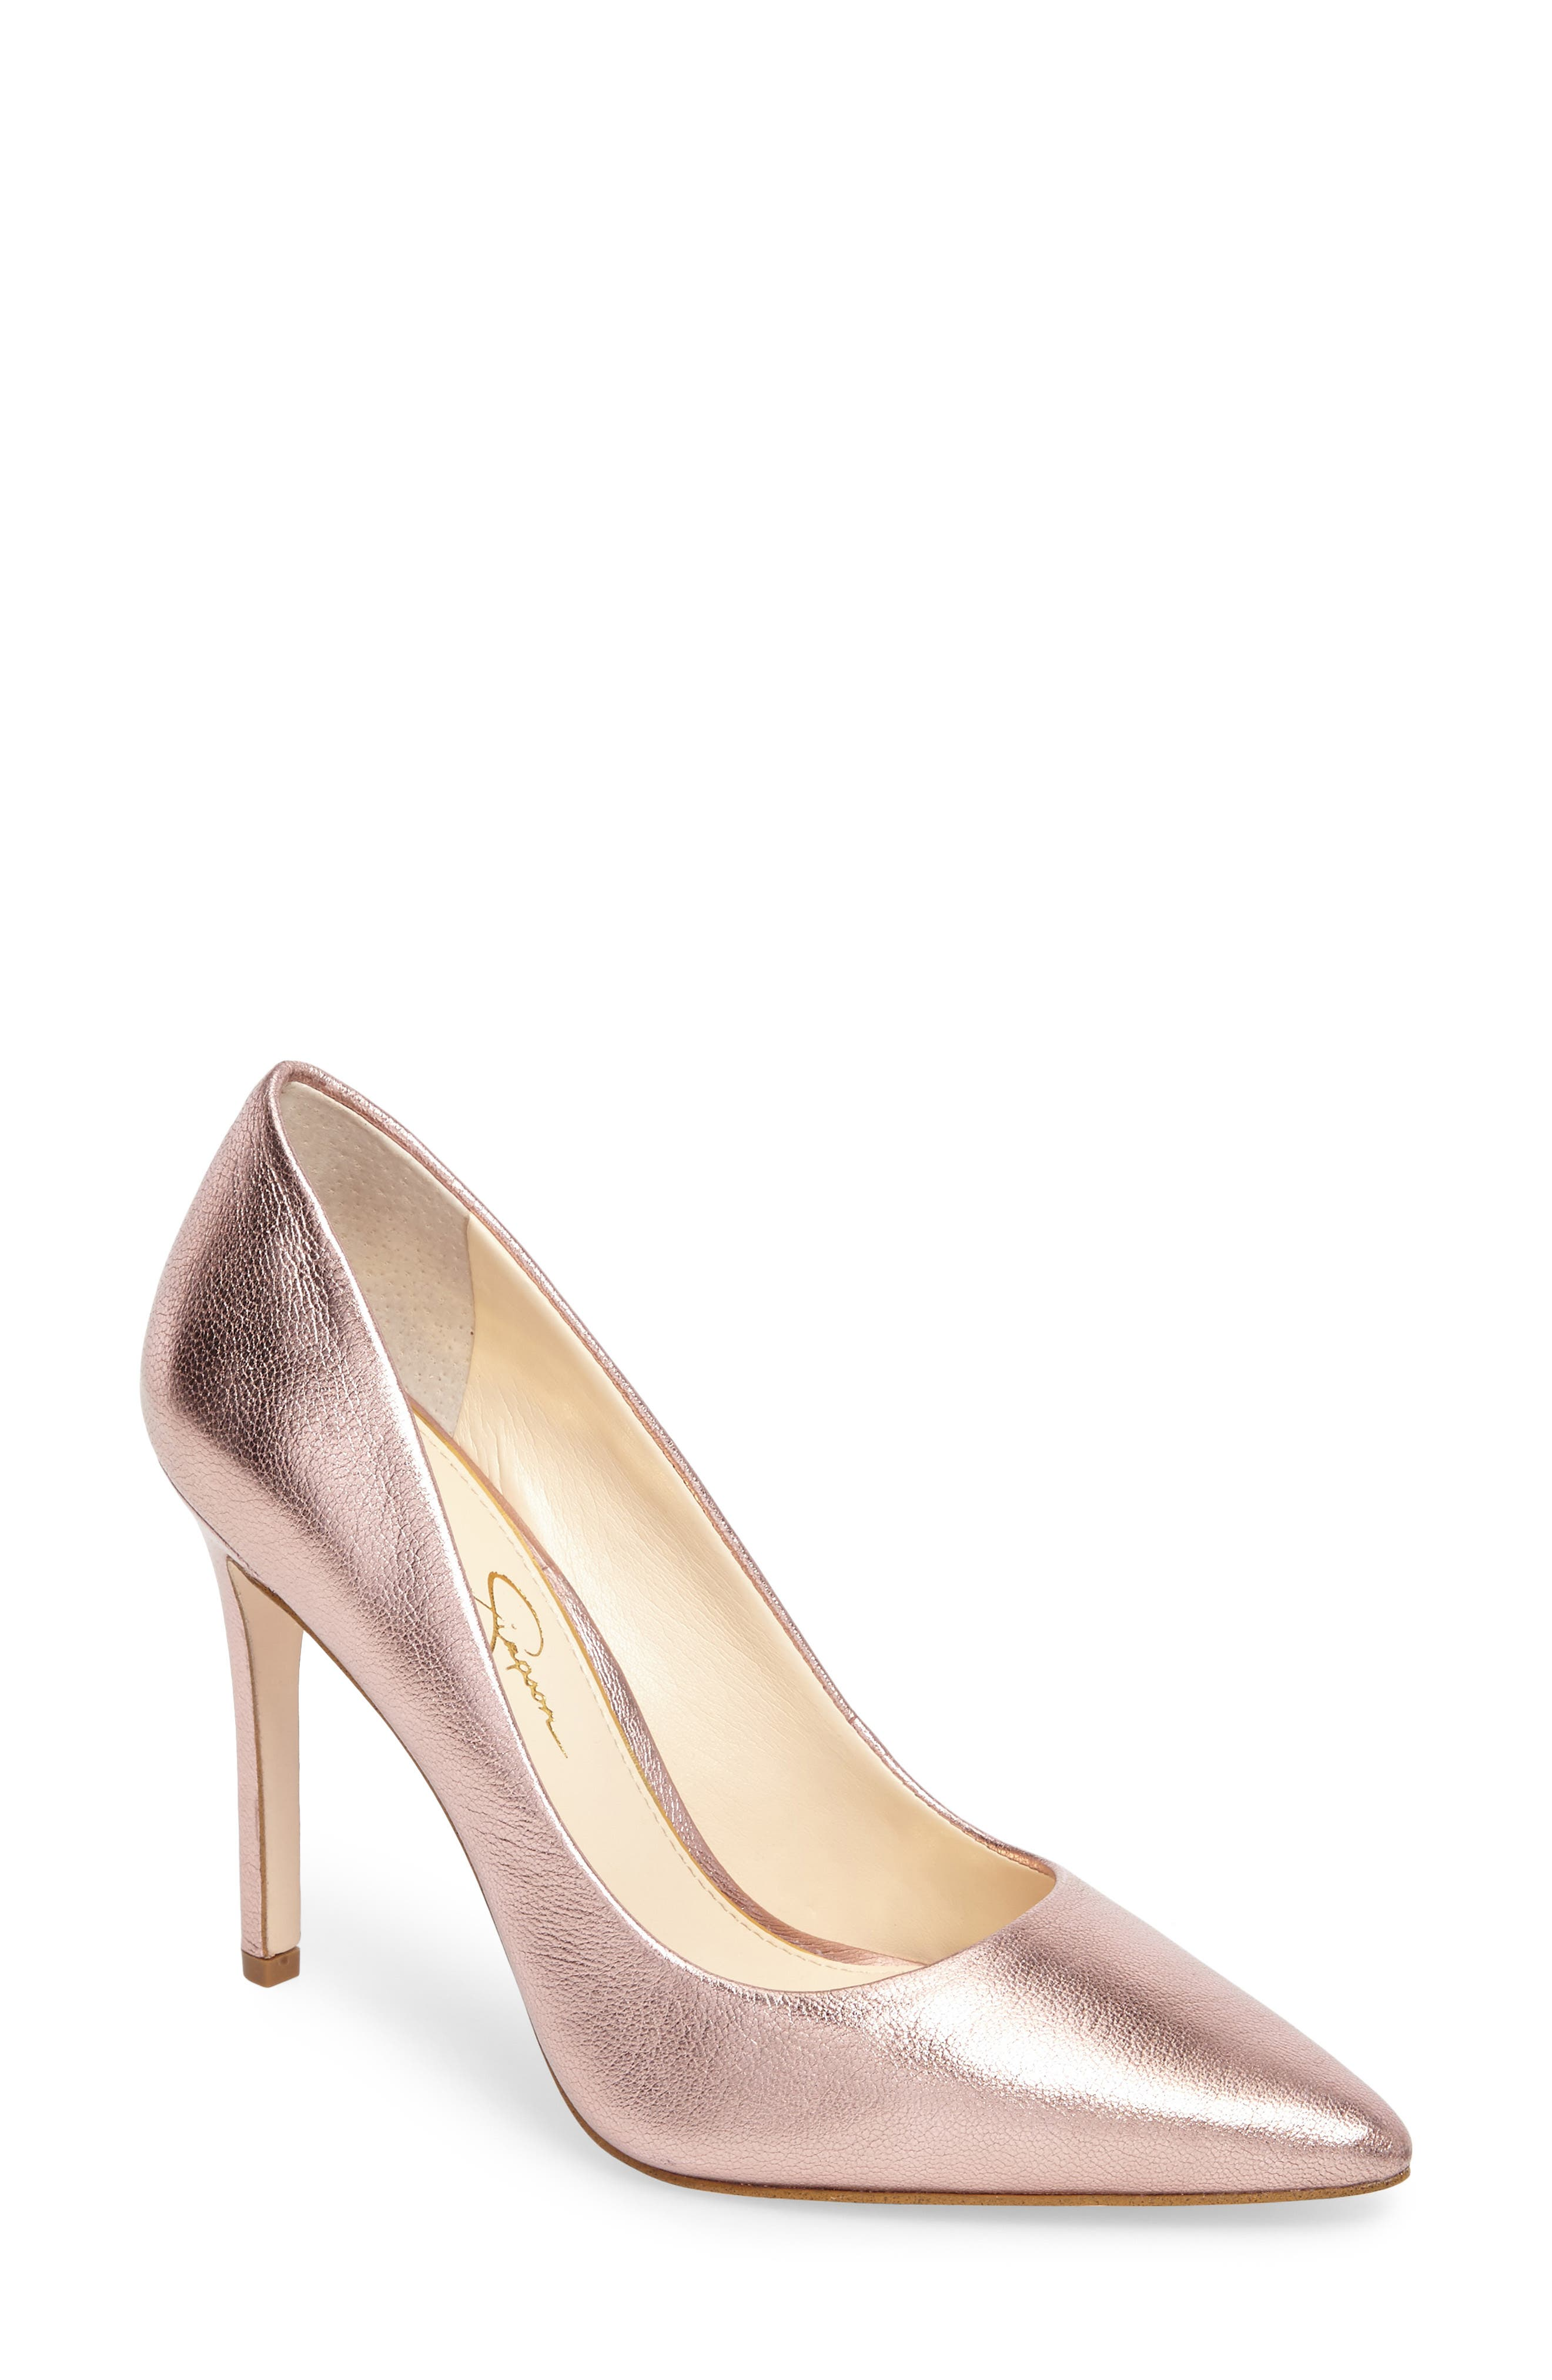 Praylee Pointy Toe Pump,                             Main thumbnail 1, color,                             Dolly Pink Leather